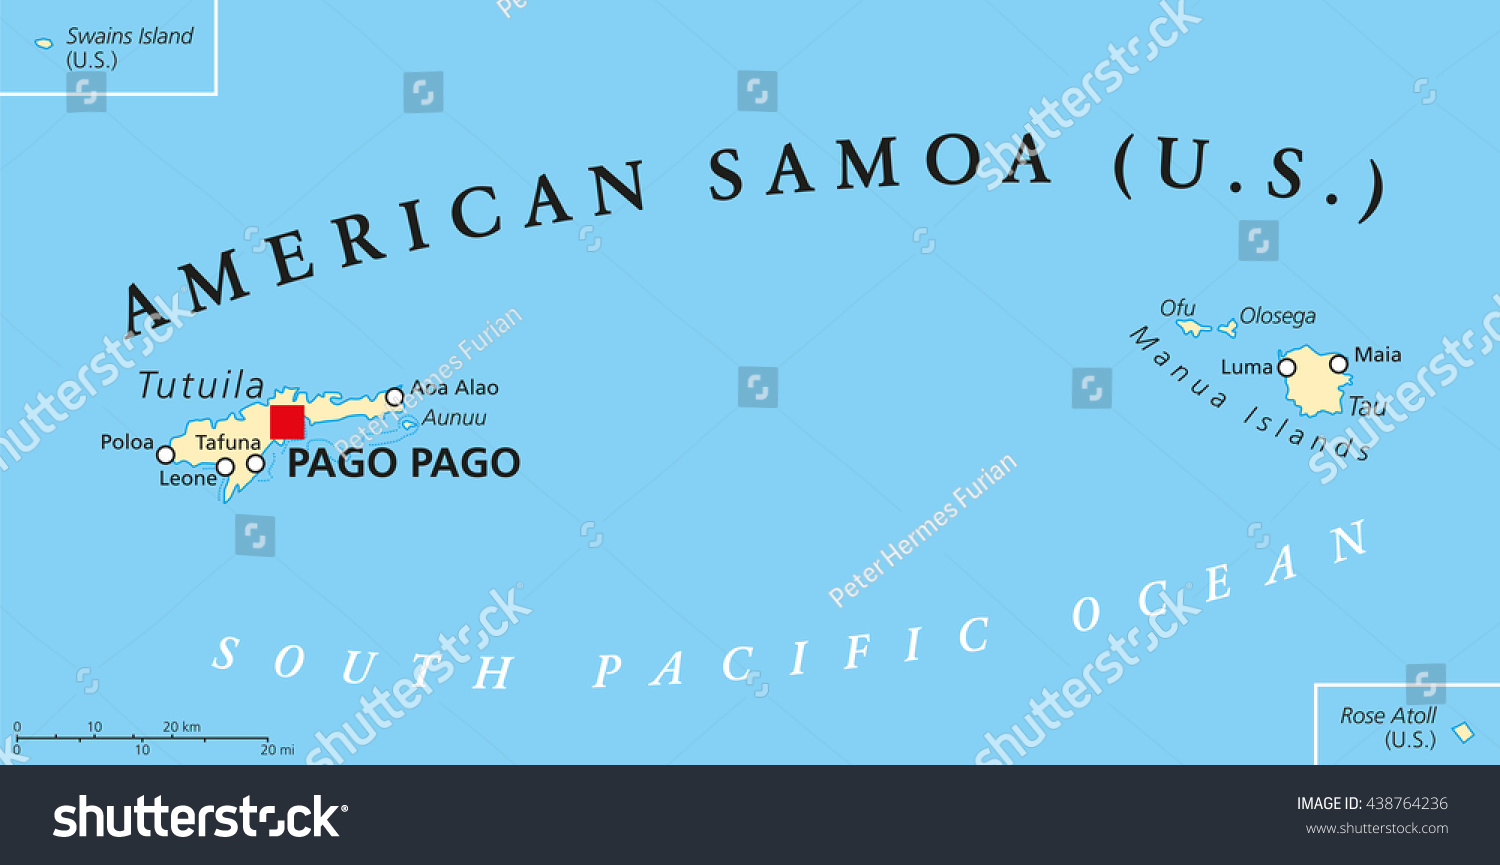 Samoan islands political map samoa formerly vectores en stock samoan islands political map with samoa formerly known as western samoa and american samoa and gumiabroncs Image collections